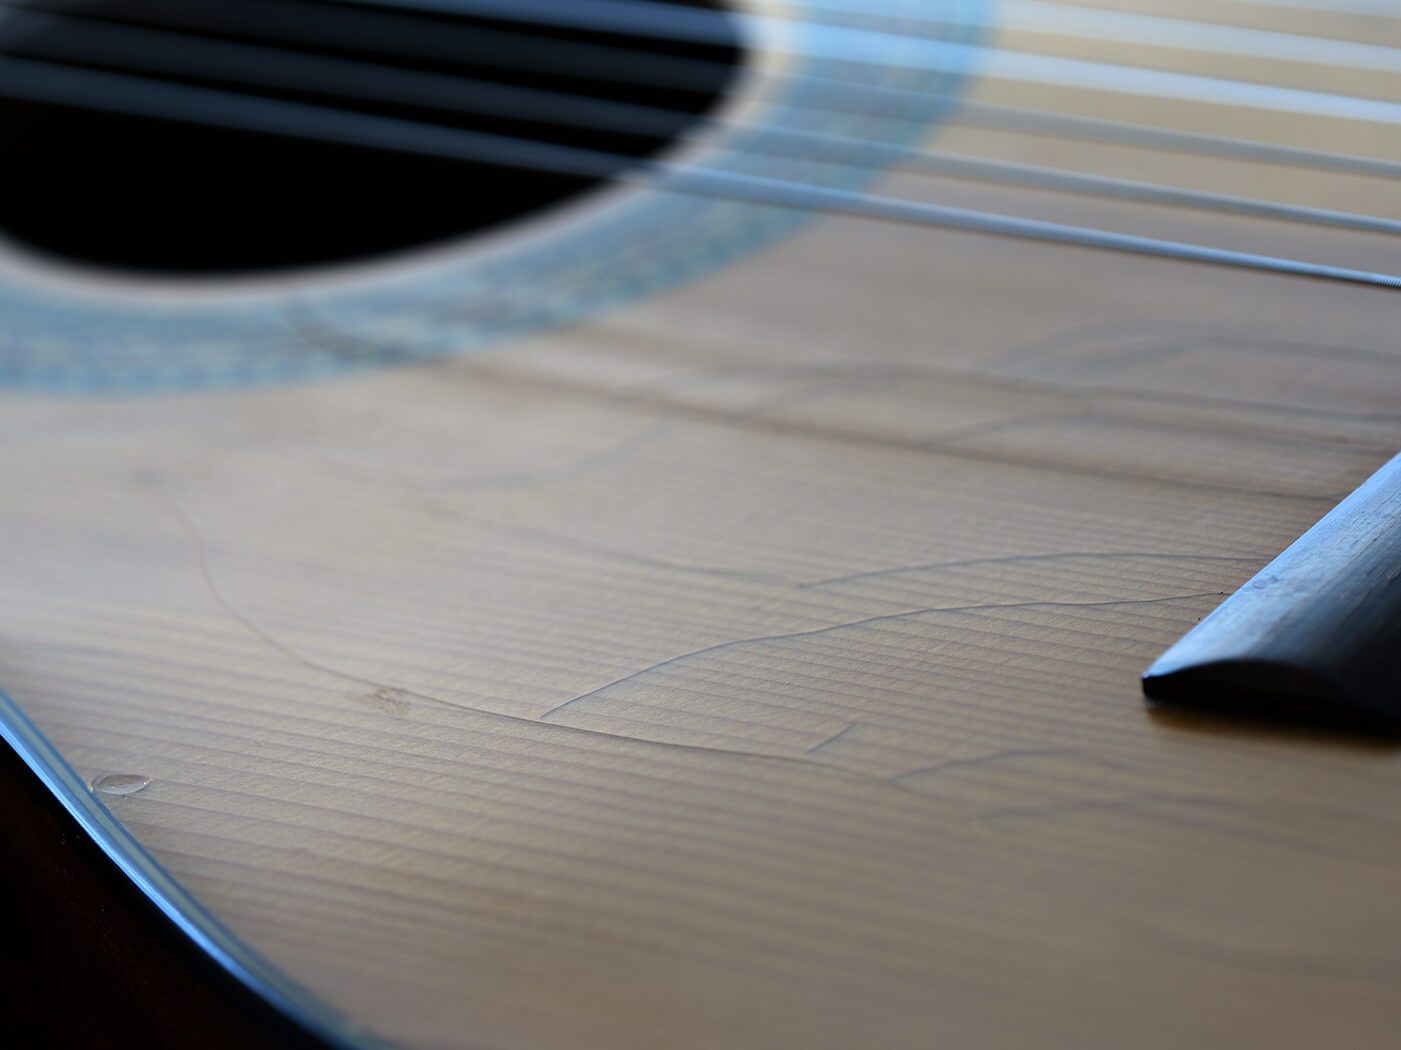 Image of cracked finish on an acoustic guitar